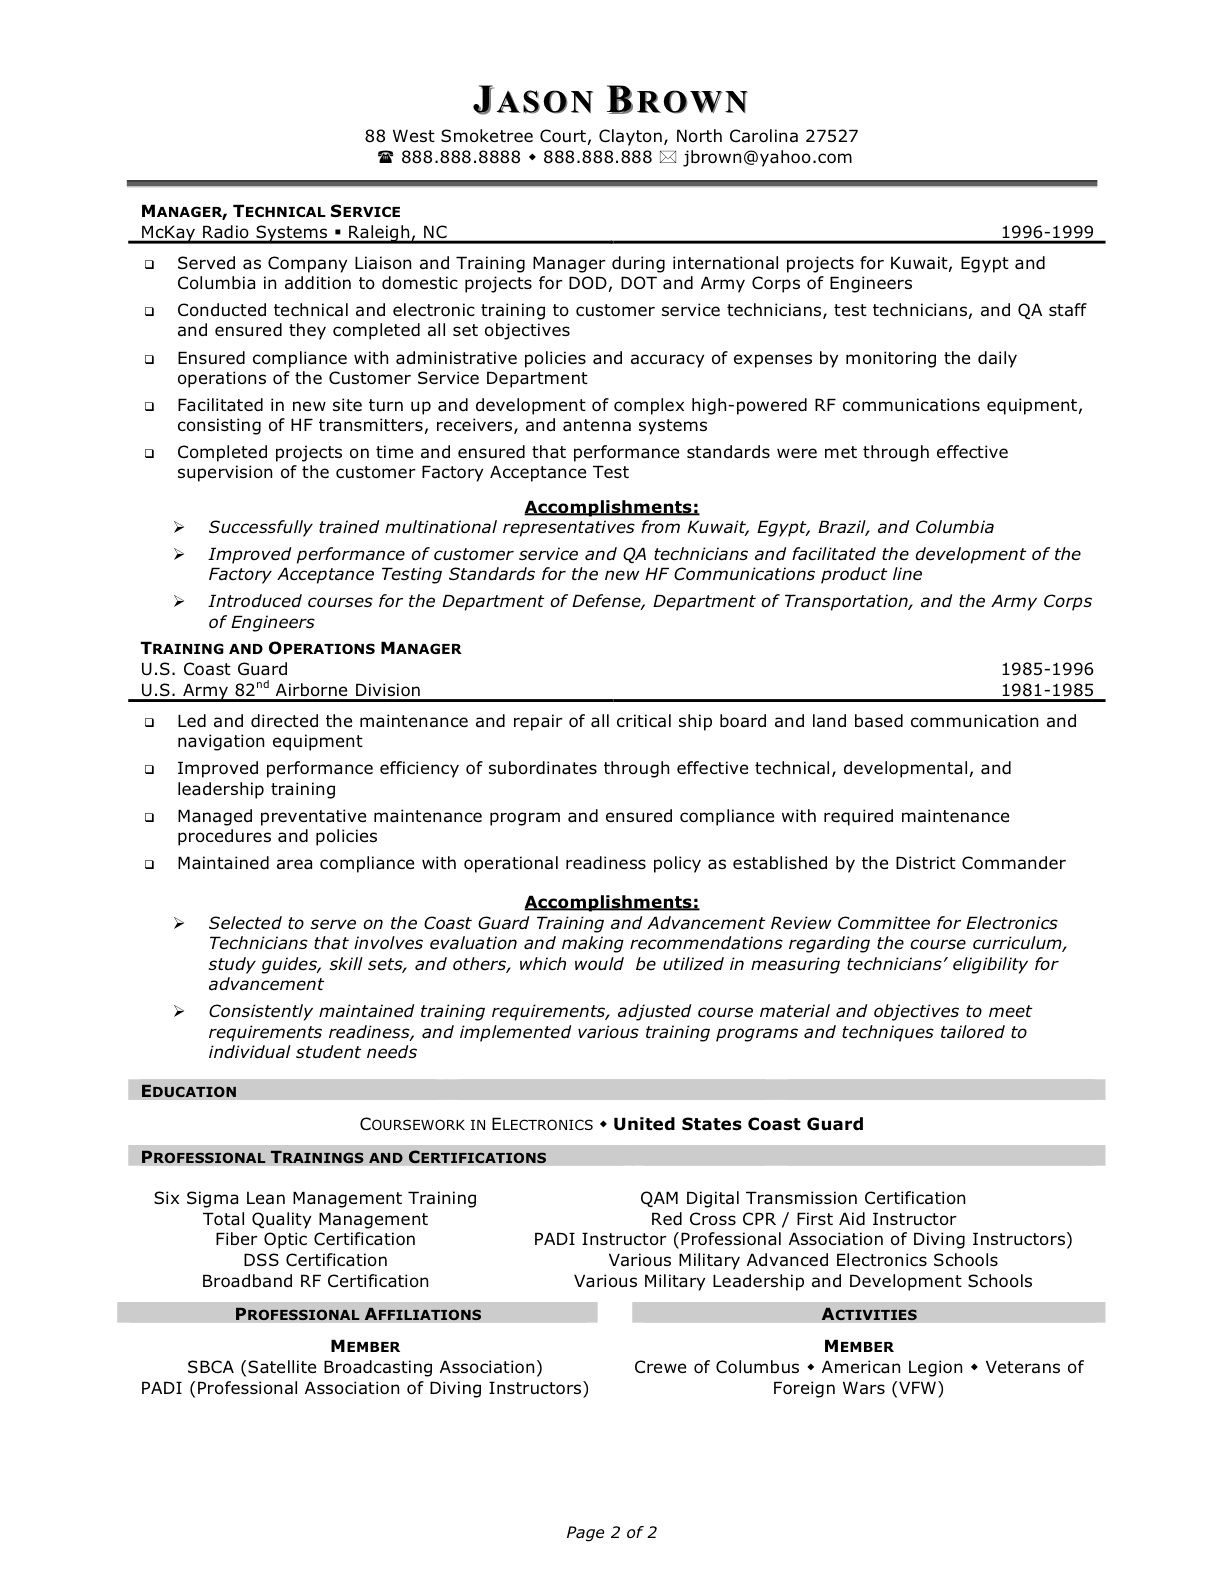 enterprise management trainee program resume